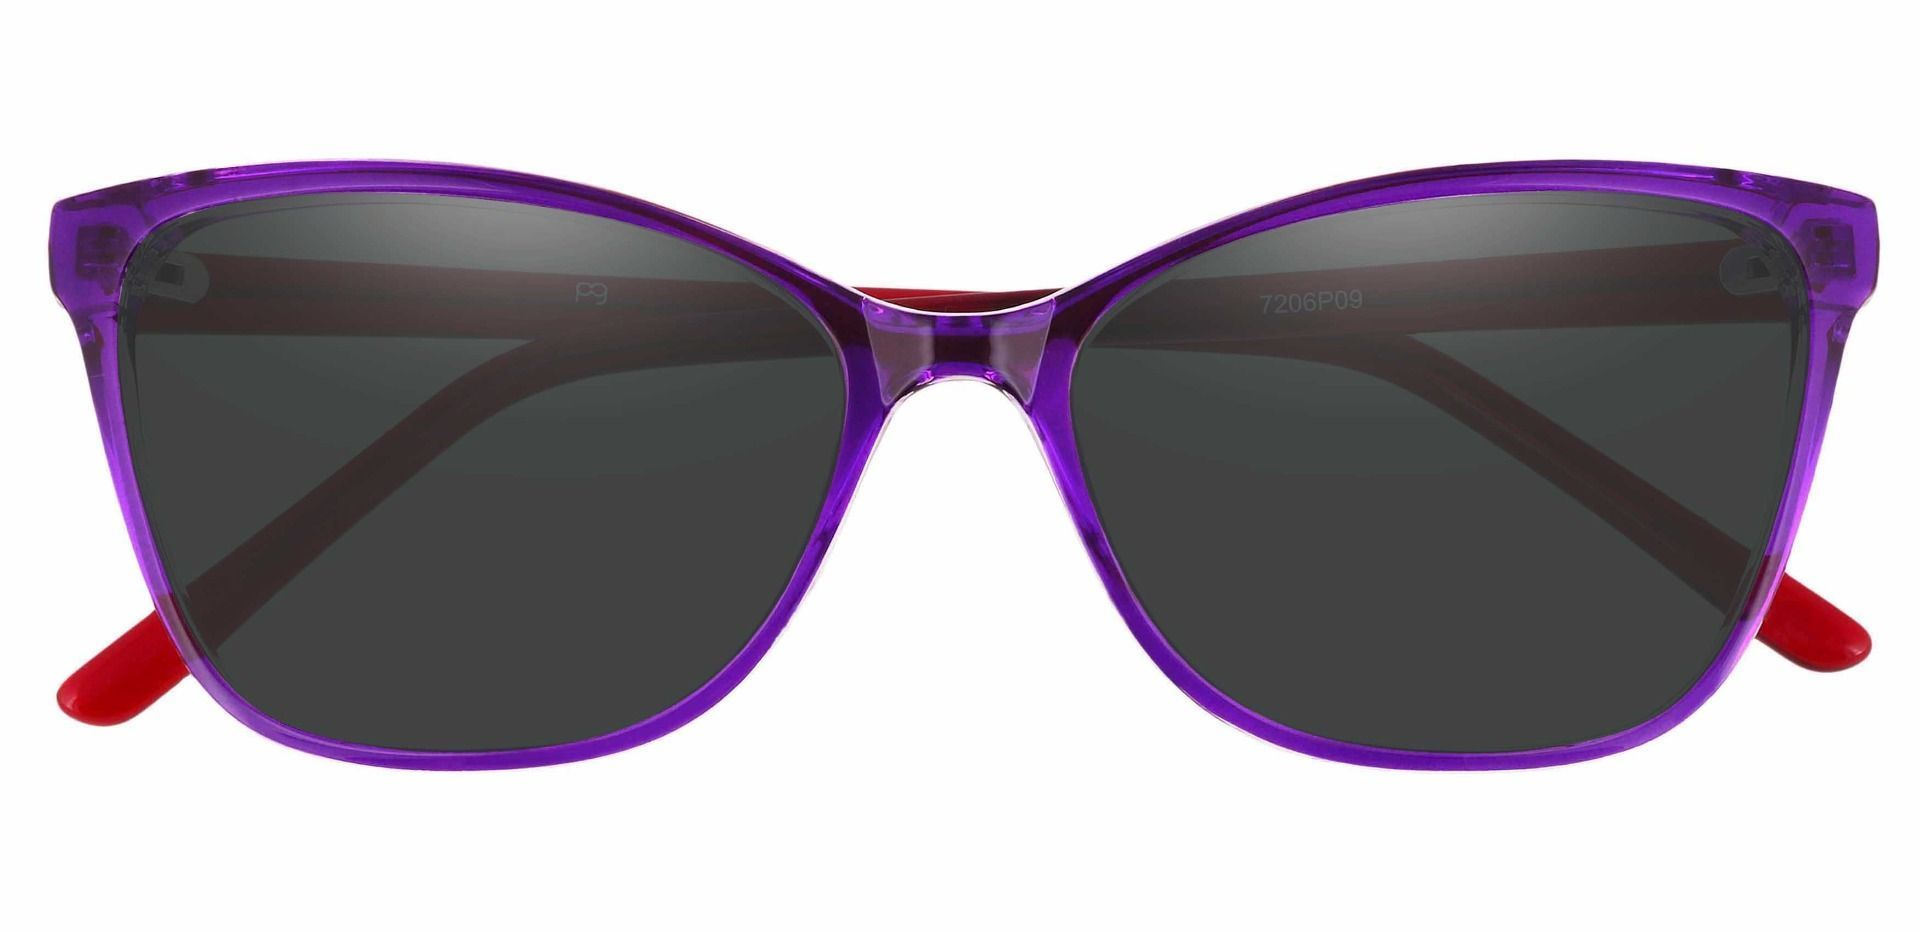 Brynn Cat Eye Prescription Sunglasses - Purple Frame With Gray Lenses